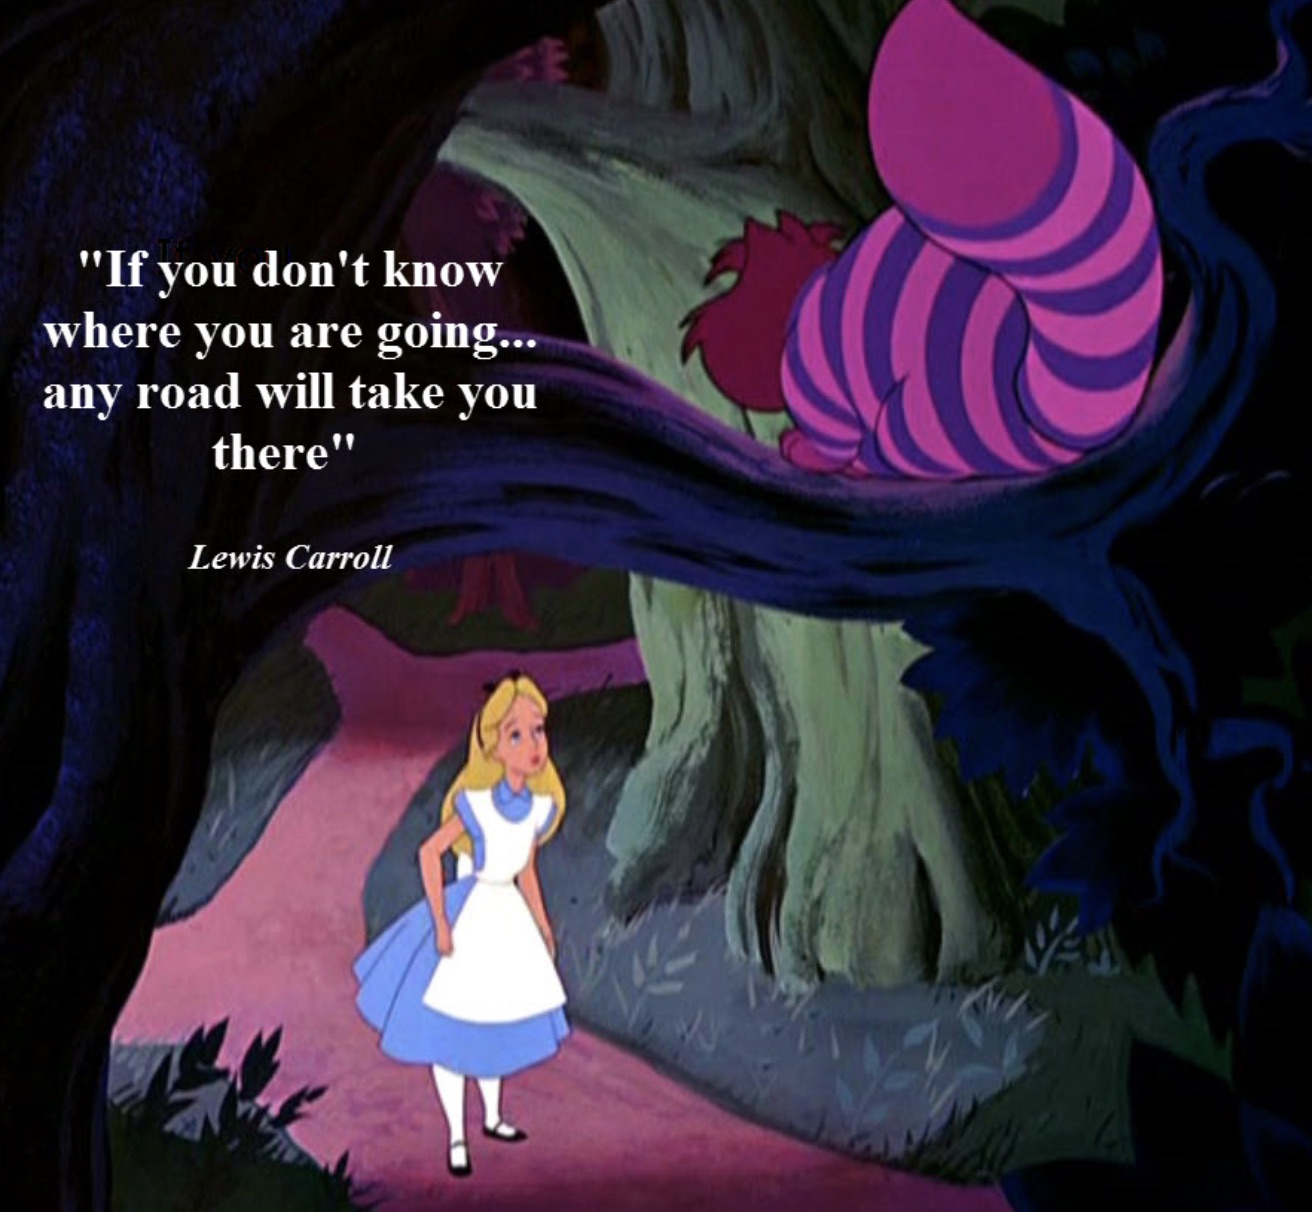 cheshire cat- any road will take you there.jpg